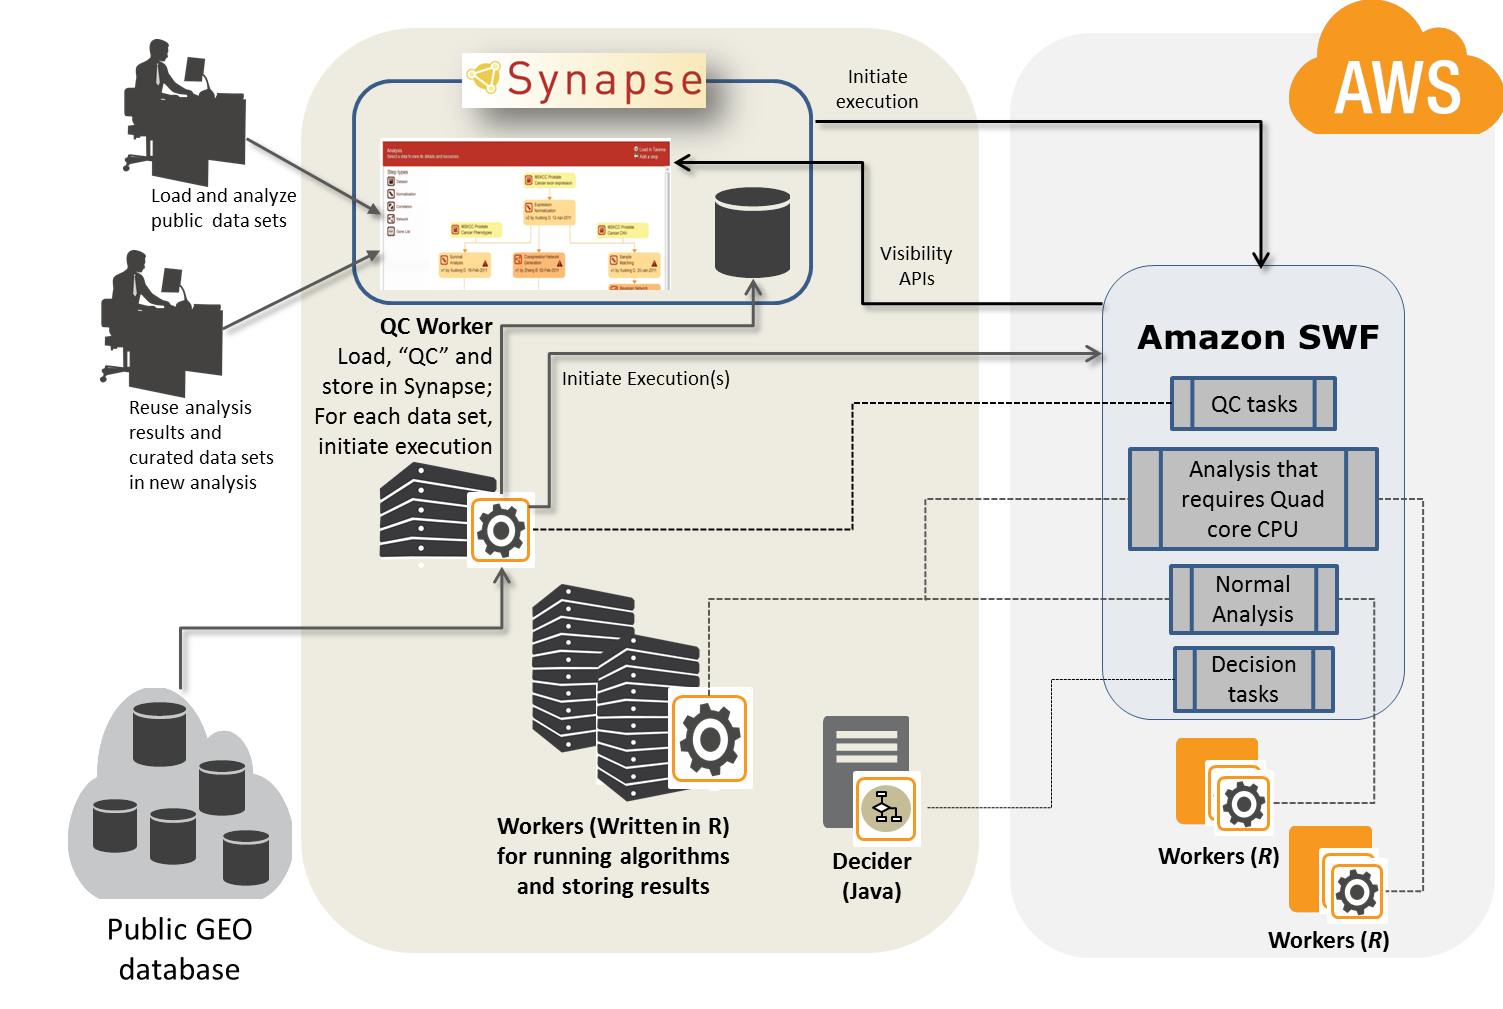 Synapse and Amazon SWF architecture